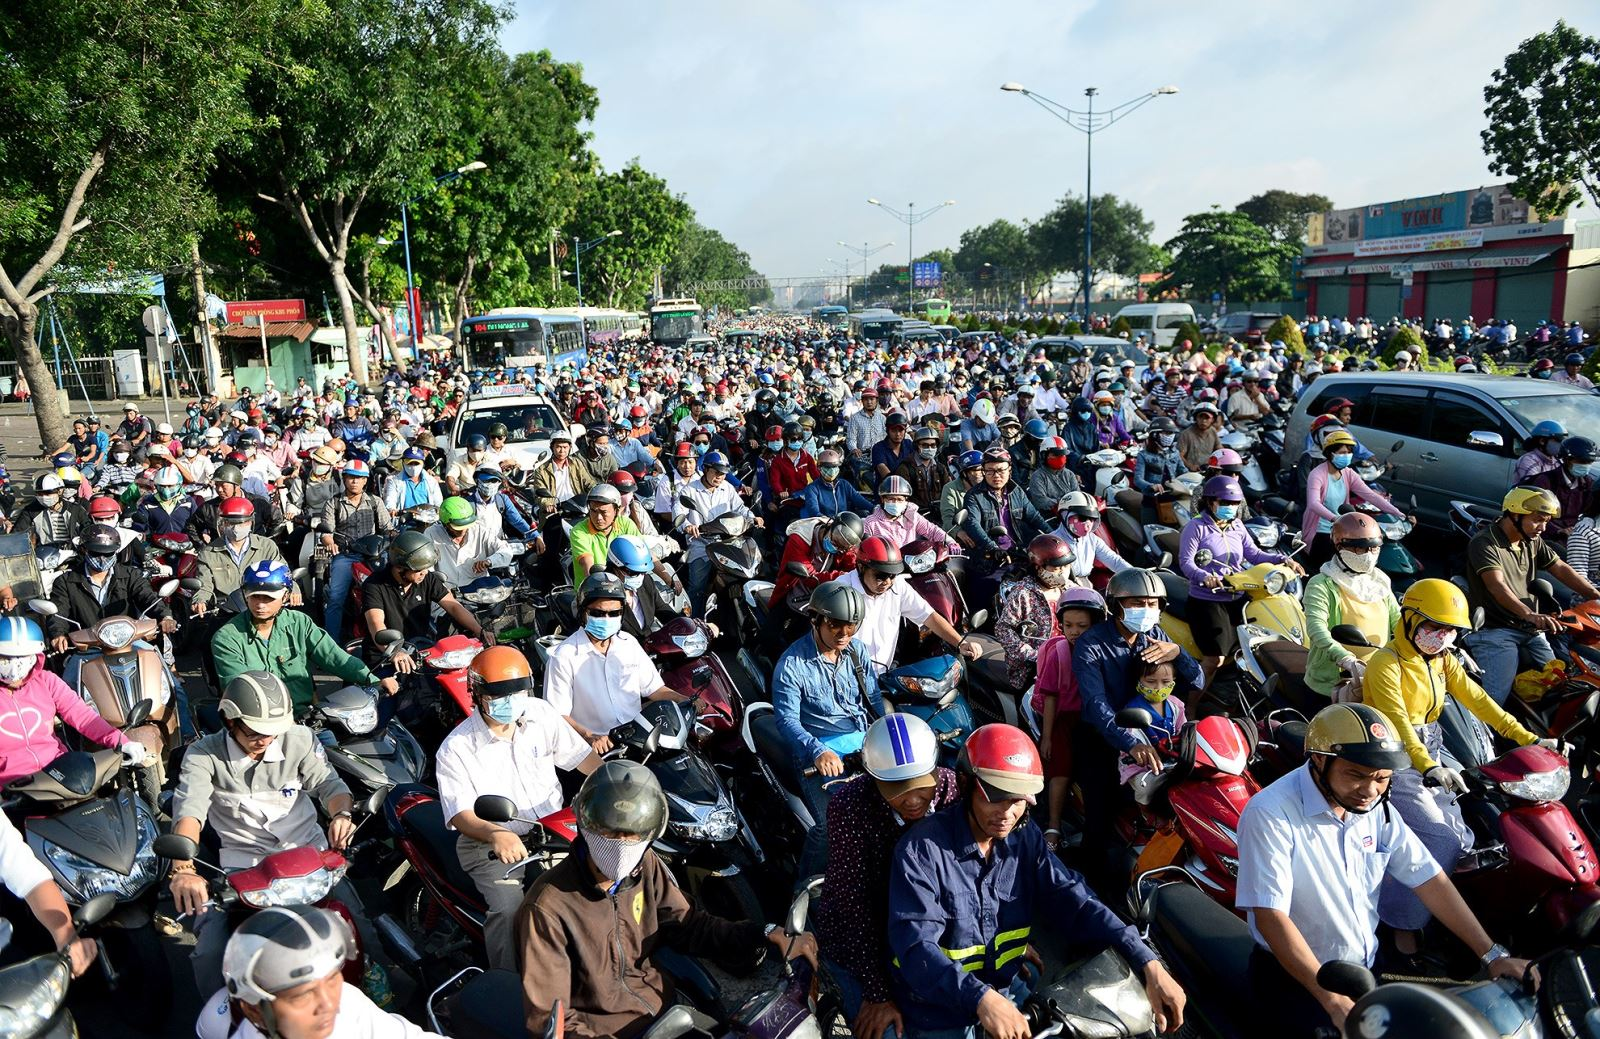 Crowded street full of motorcycles and scooters in Vietnam